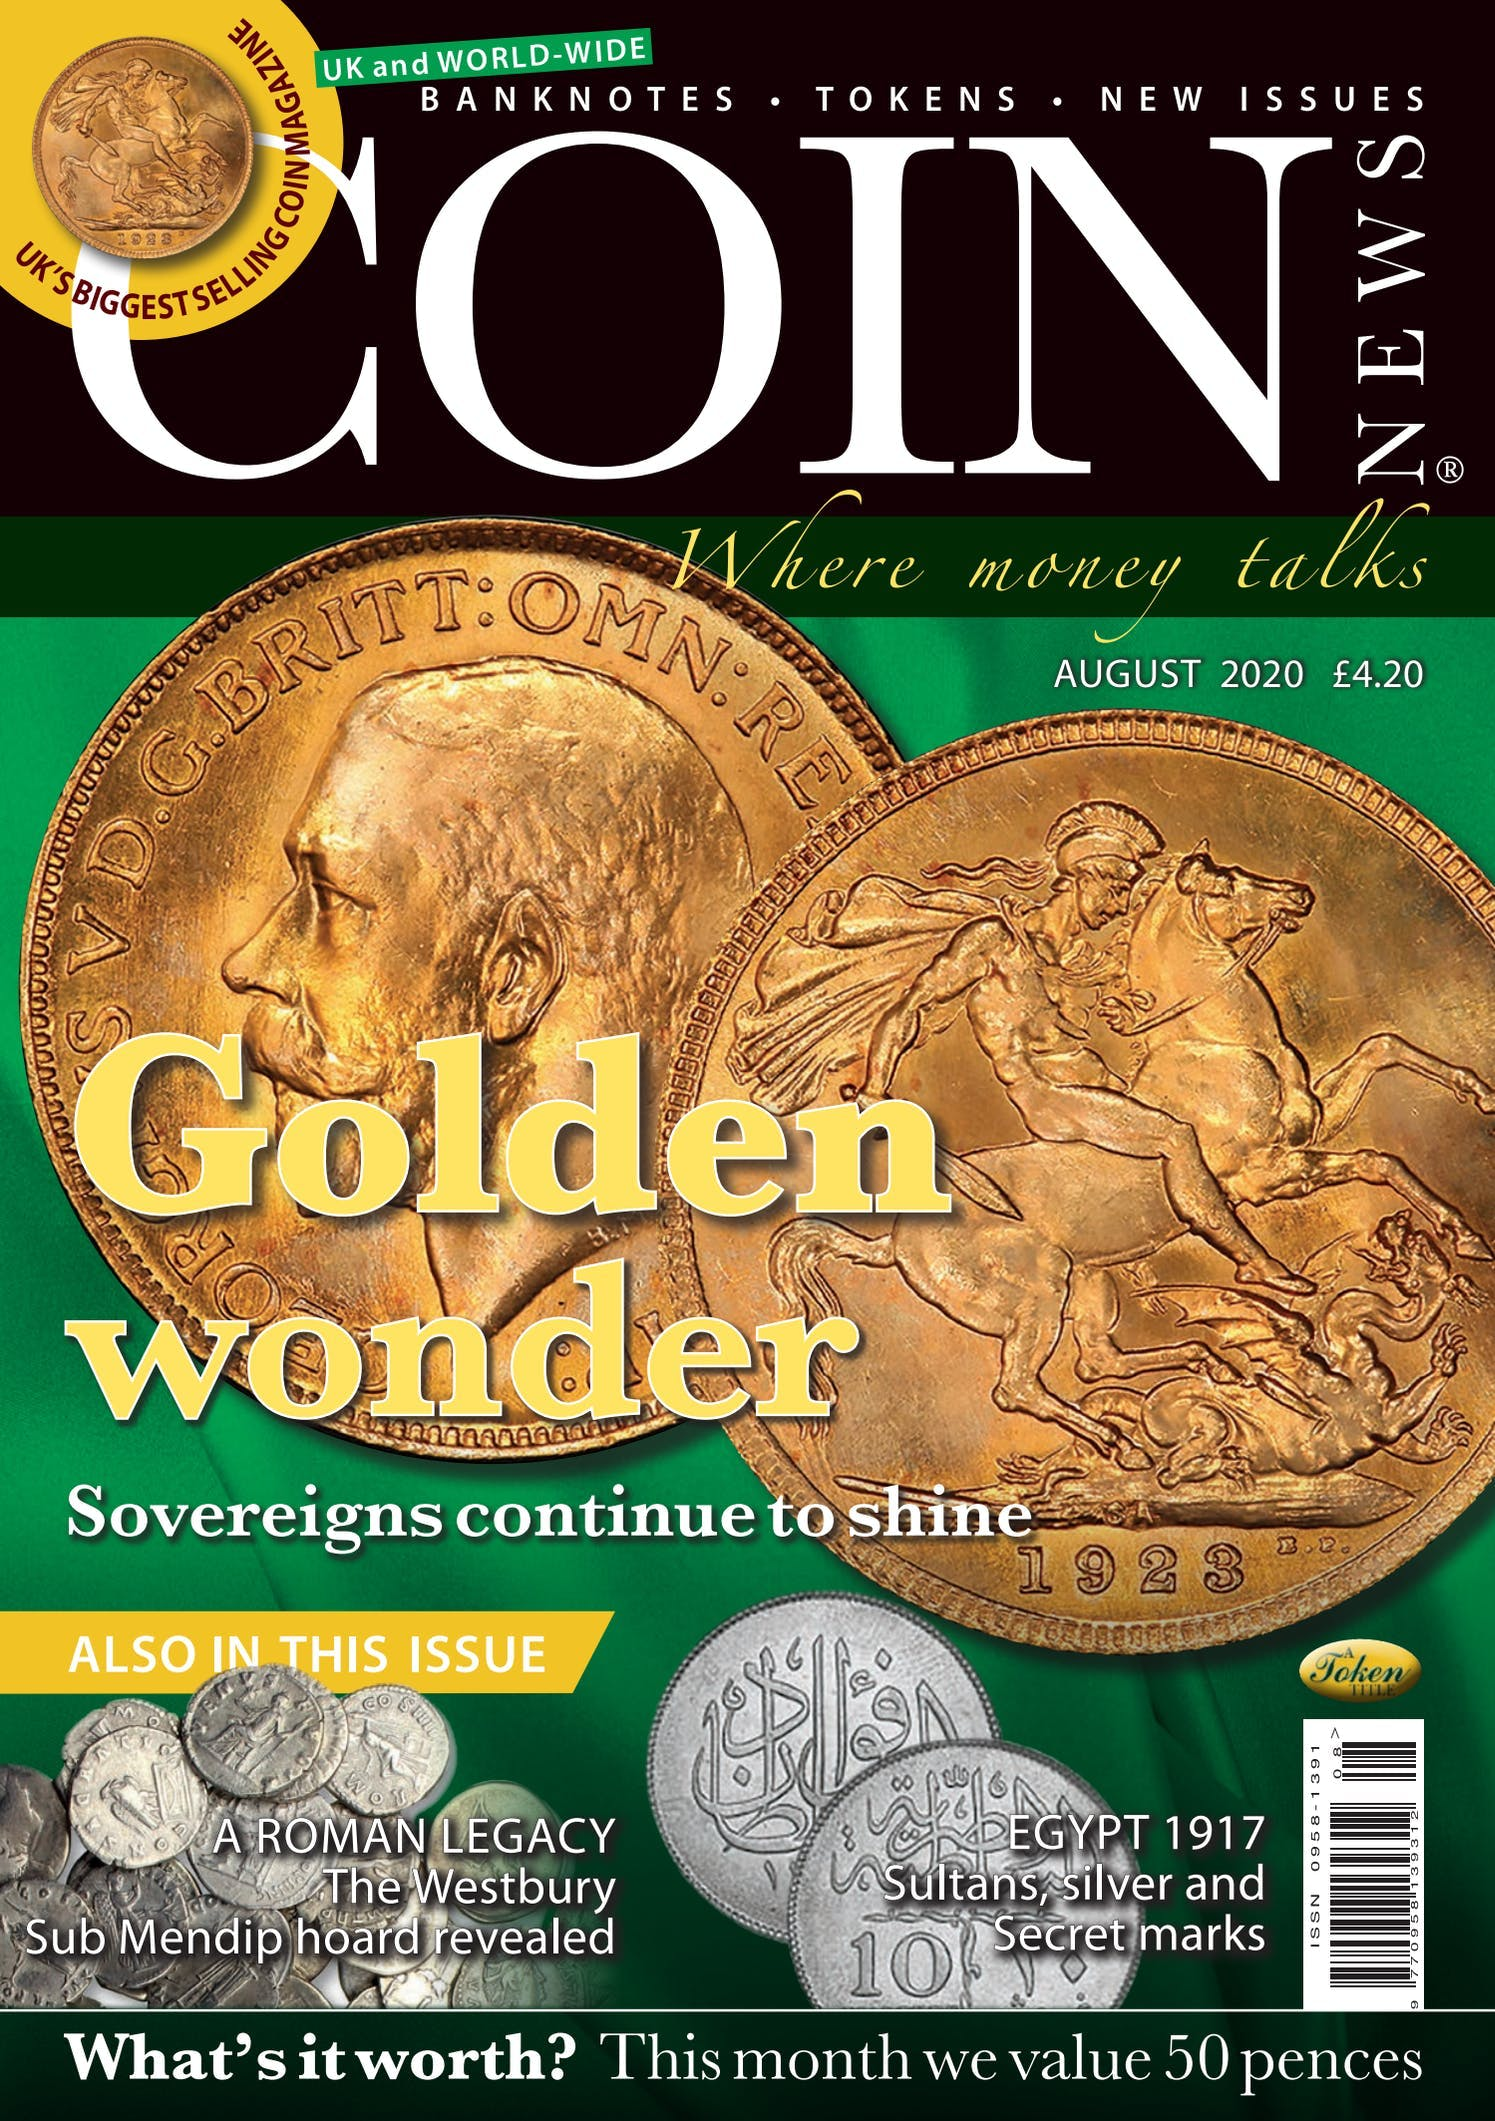 The front cover of Coin News, August 2020 - Volume 57, Number 8